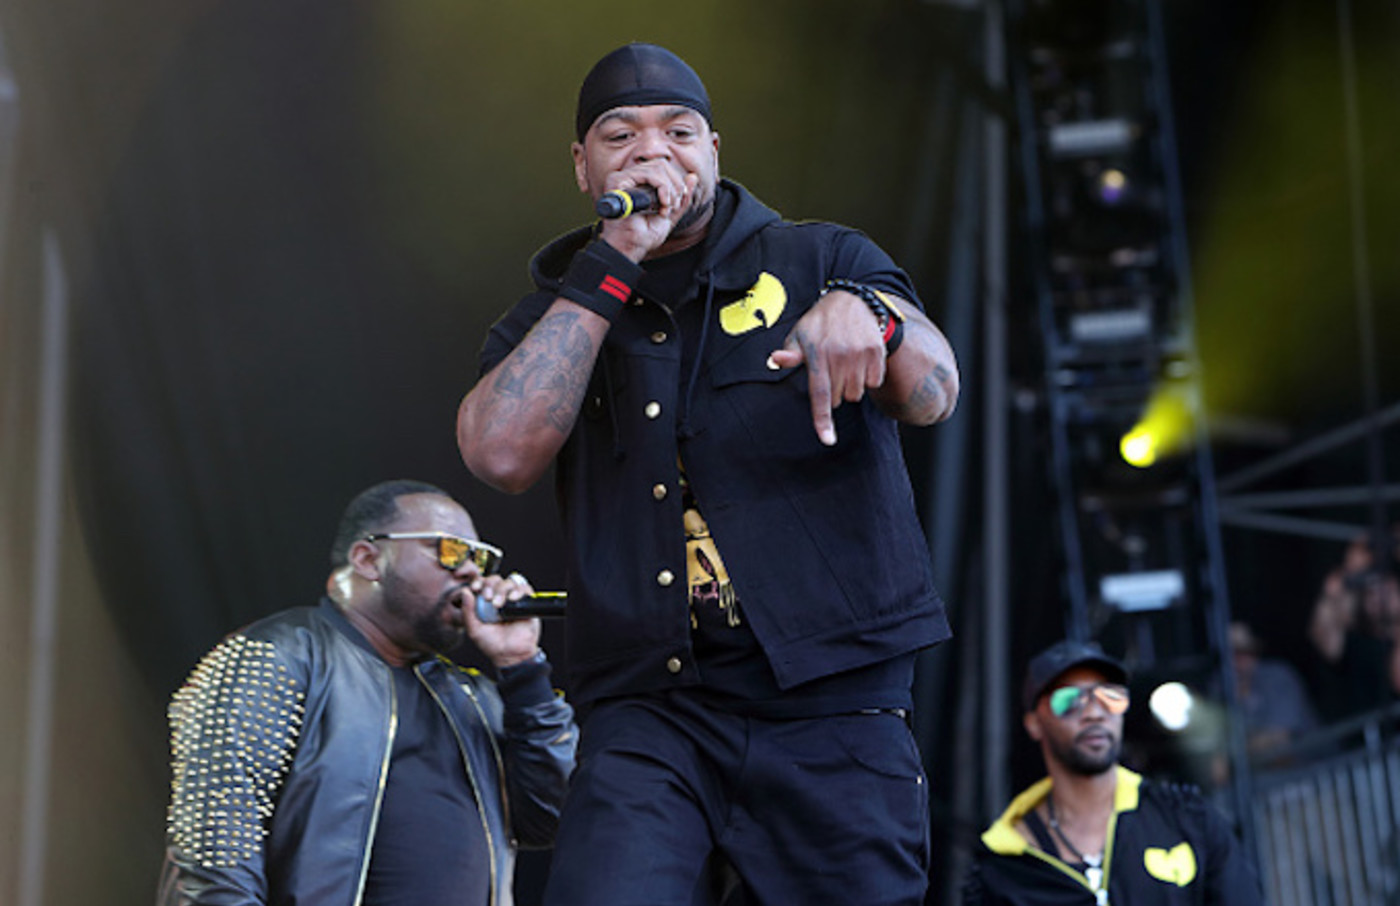 Method Man of Wu-Tang Clan performs on day 2 of the Governors Ball